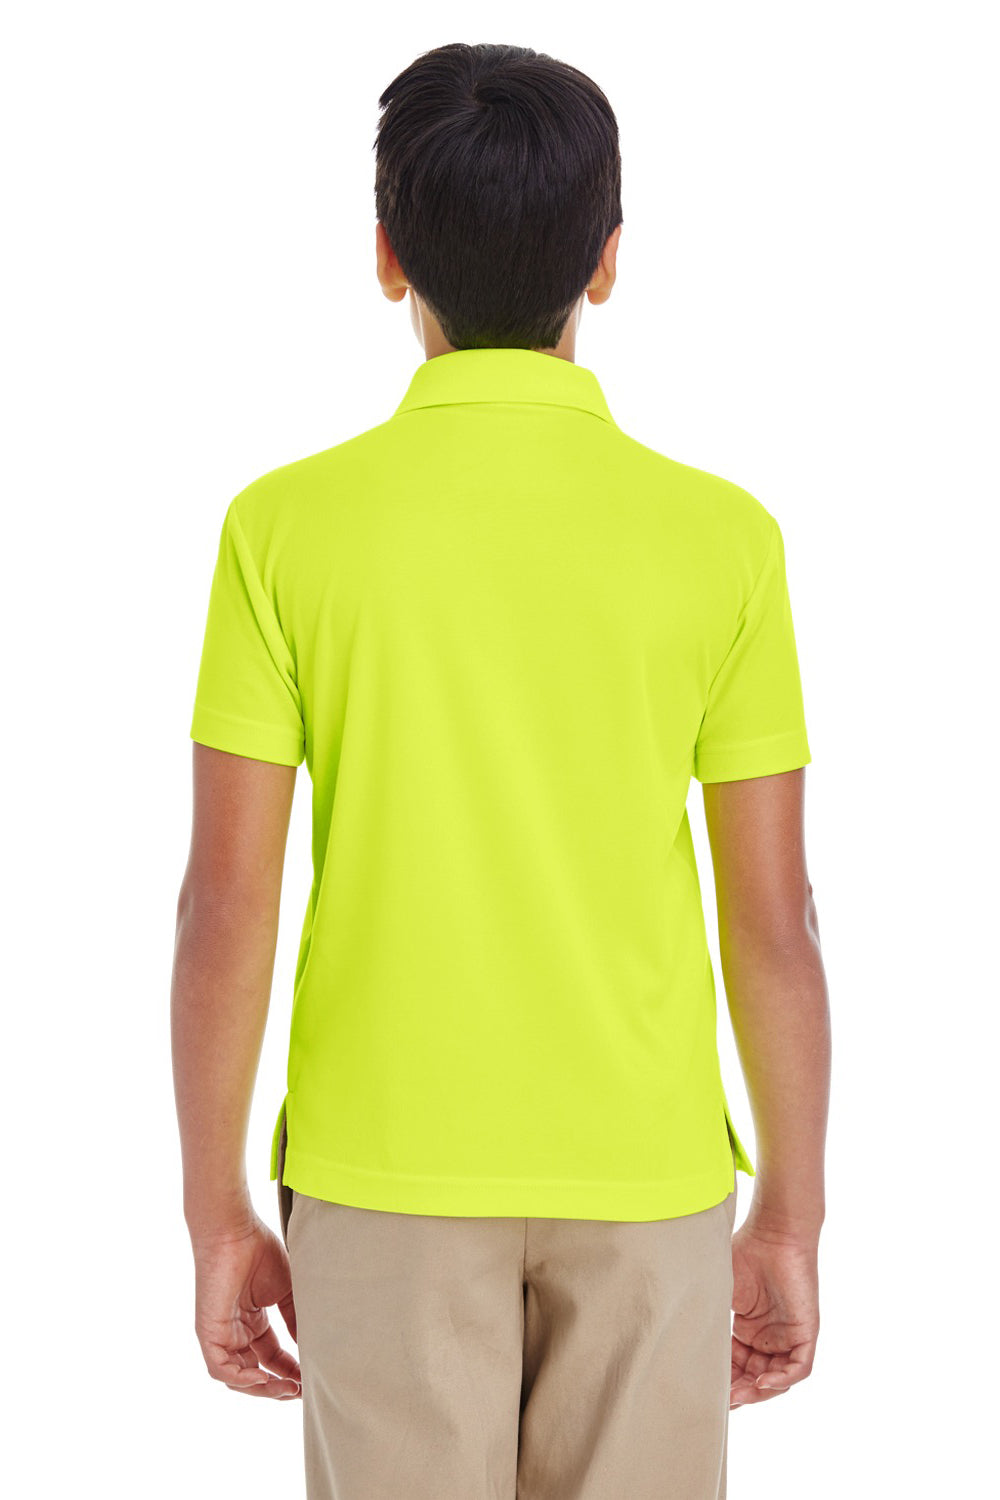 Core 365 88181Y Youth Origin Performance Moisture Wicking Short Sleeve Polo Shirt Safety Yellow Back